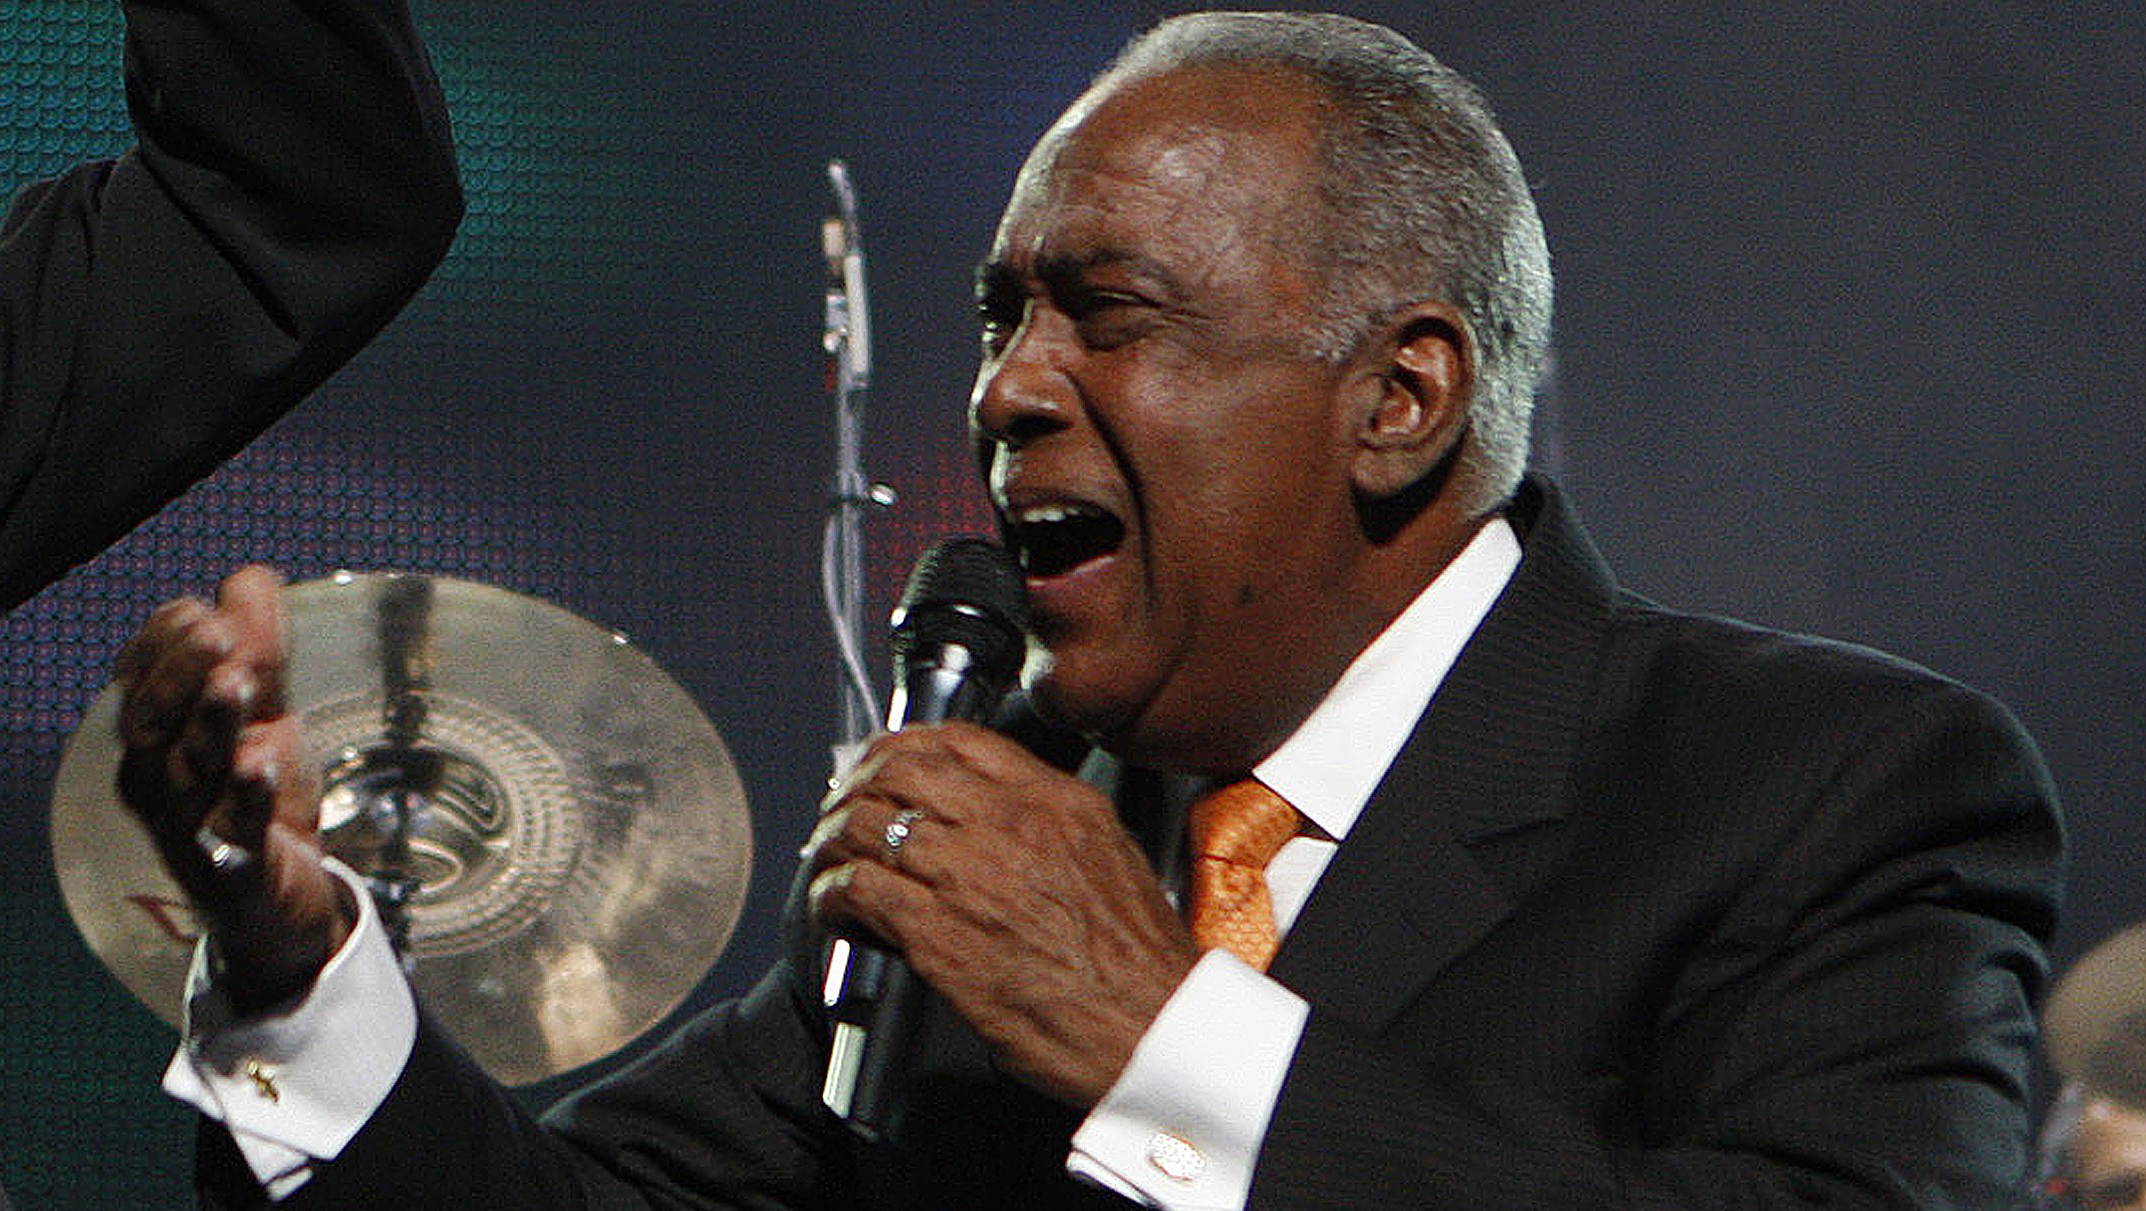 Puerto Rican Salsa Legend Cheo Feliciano Dies In A Car Accident